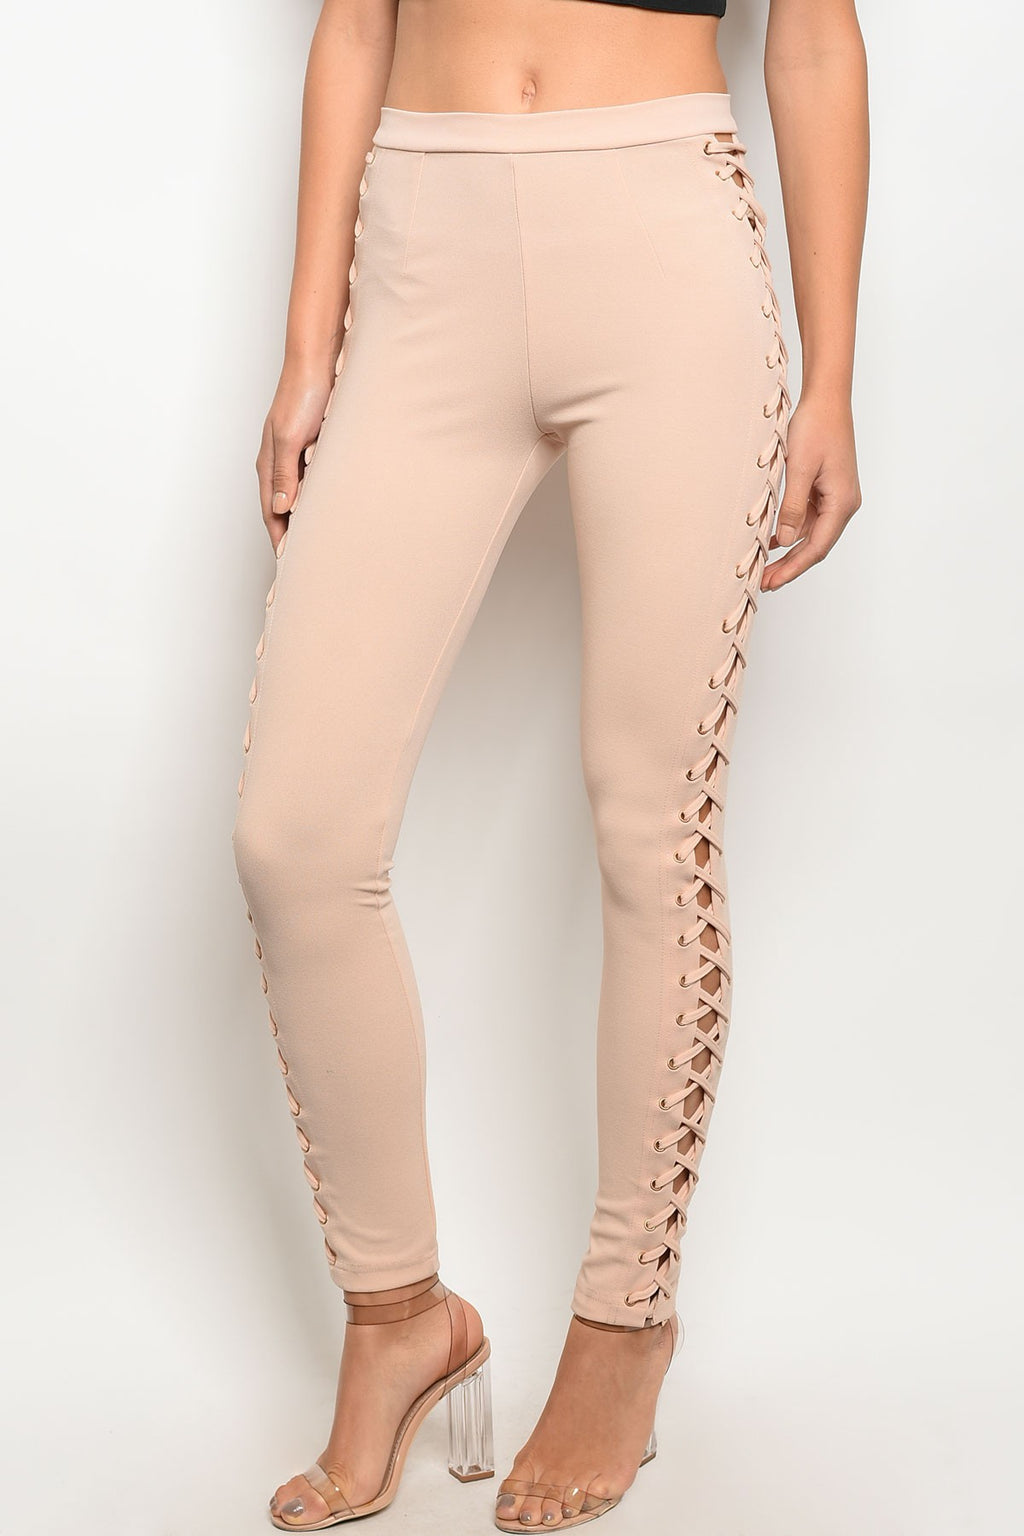 Pink Showoff Leggings - VESTITI LB